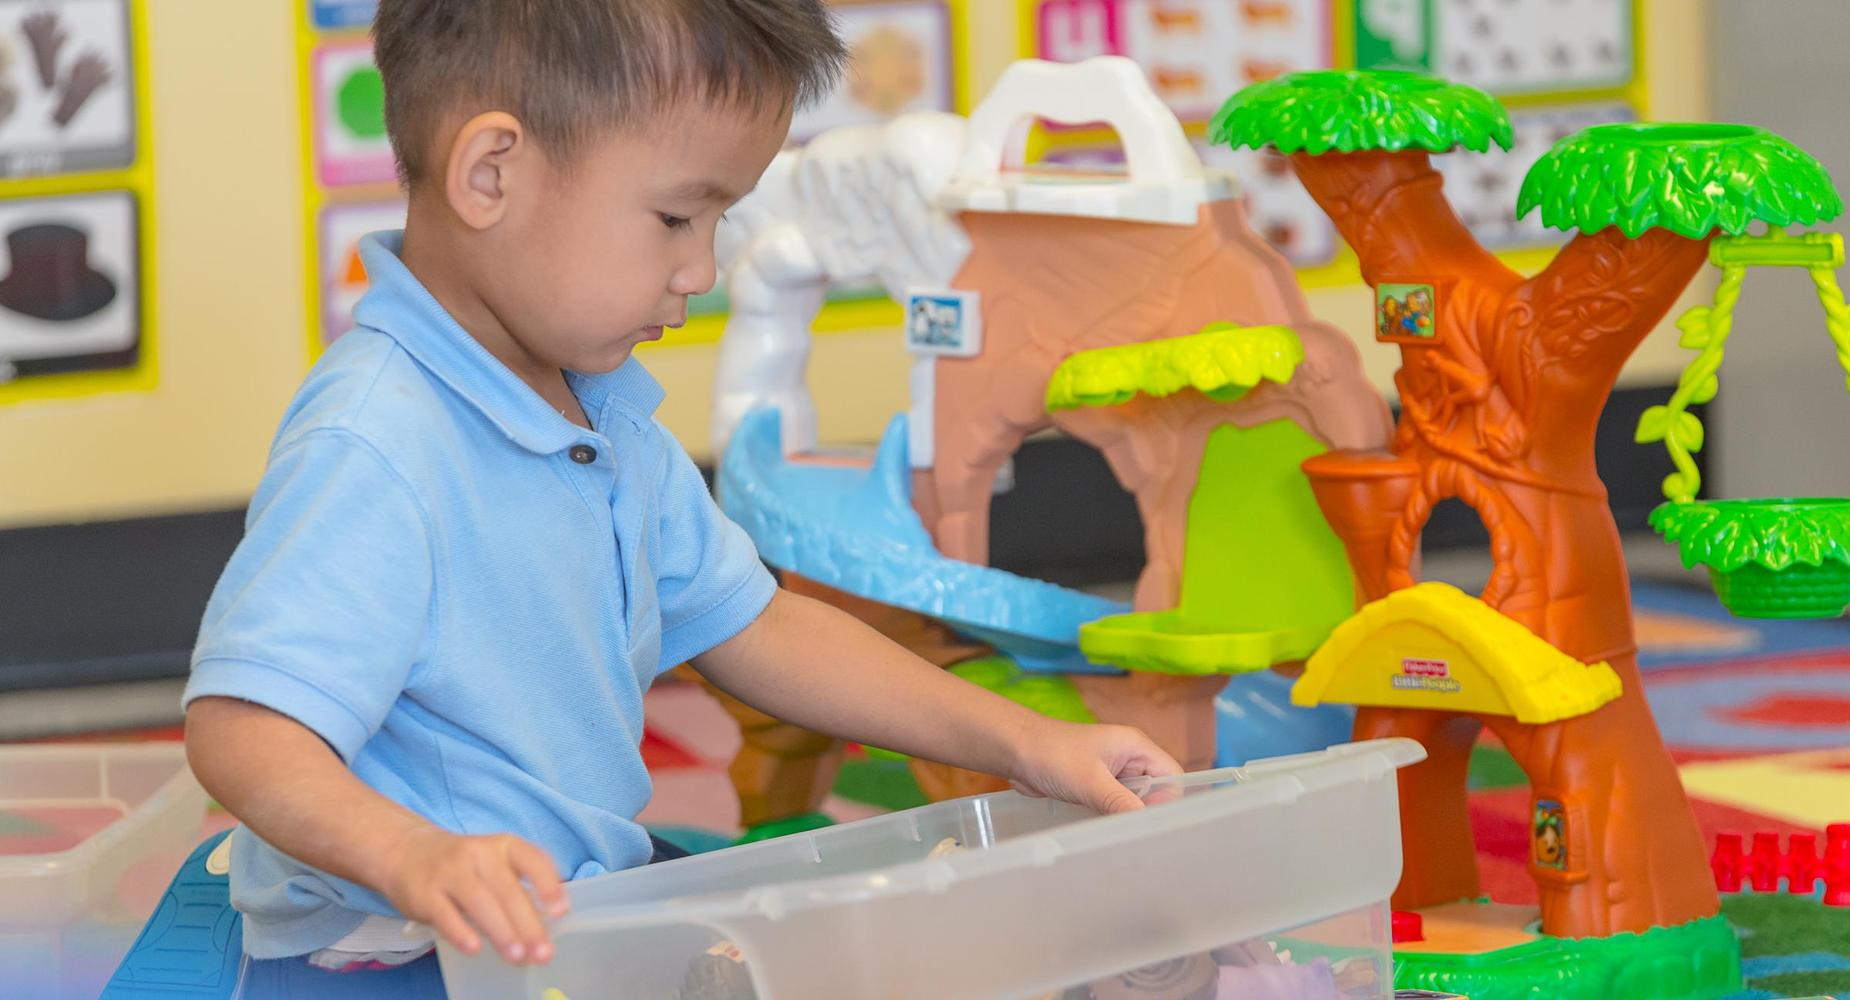 Preschool student playing with toys